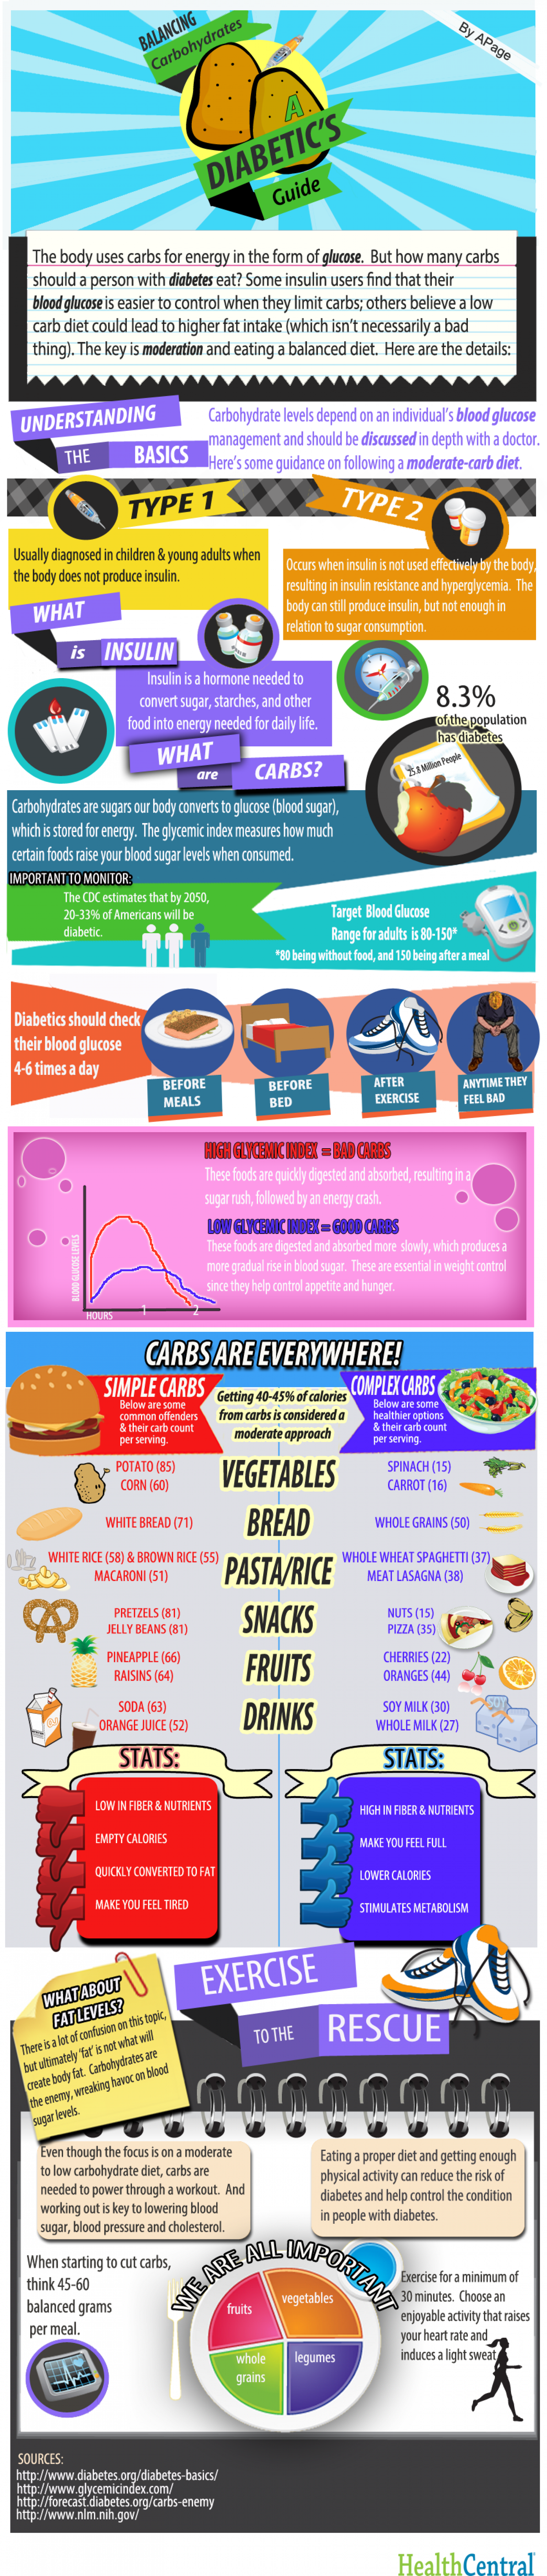 Balancing Carbs: A Diabetic's Guide Infographic